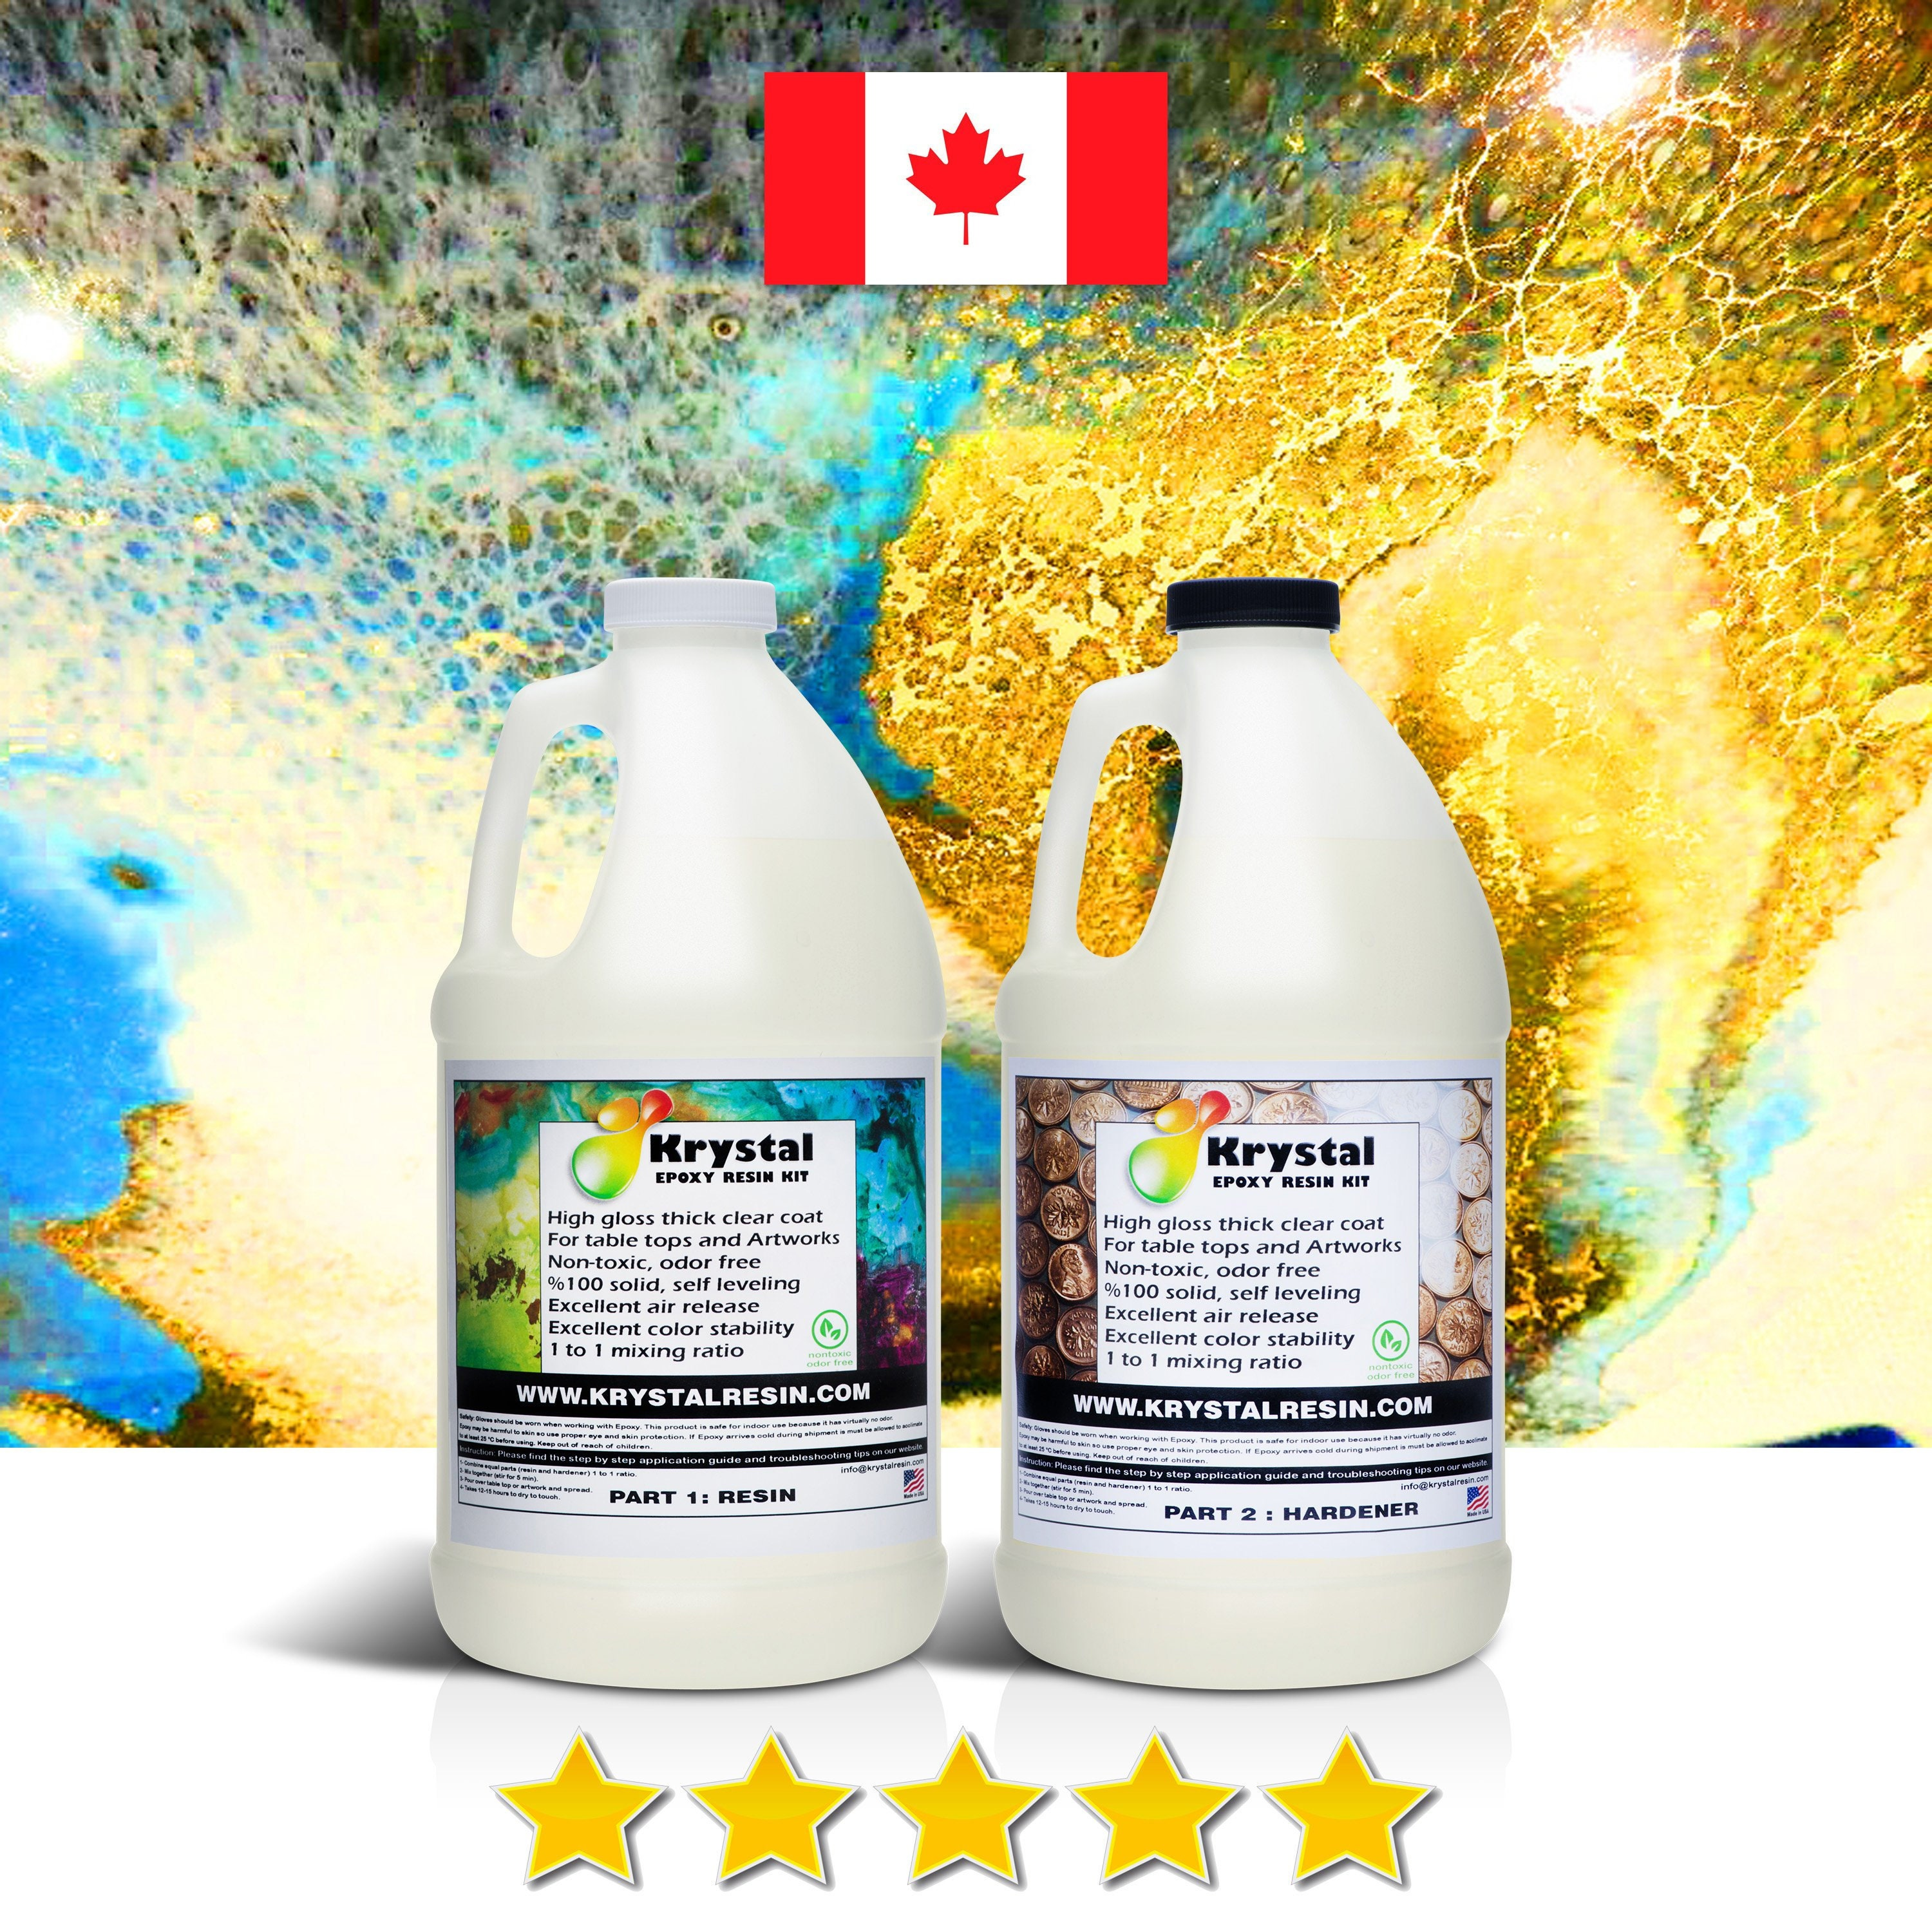 1 Gallon Kit (3 8 Litre ) Epoxy Resin For TableTops and Artworks, Clear,  non-toxic , Free Express Delivery From Toronto